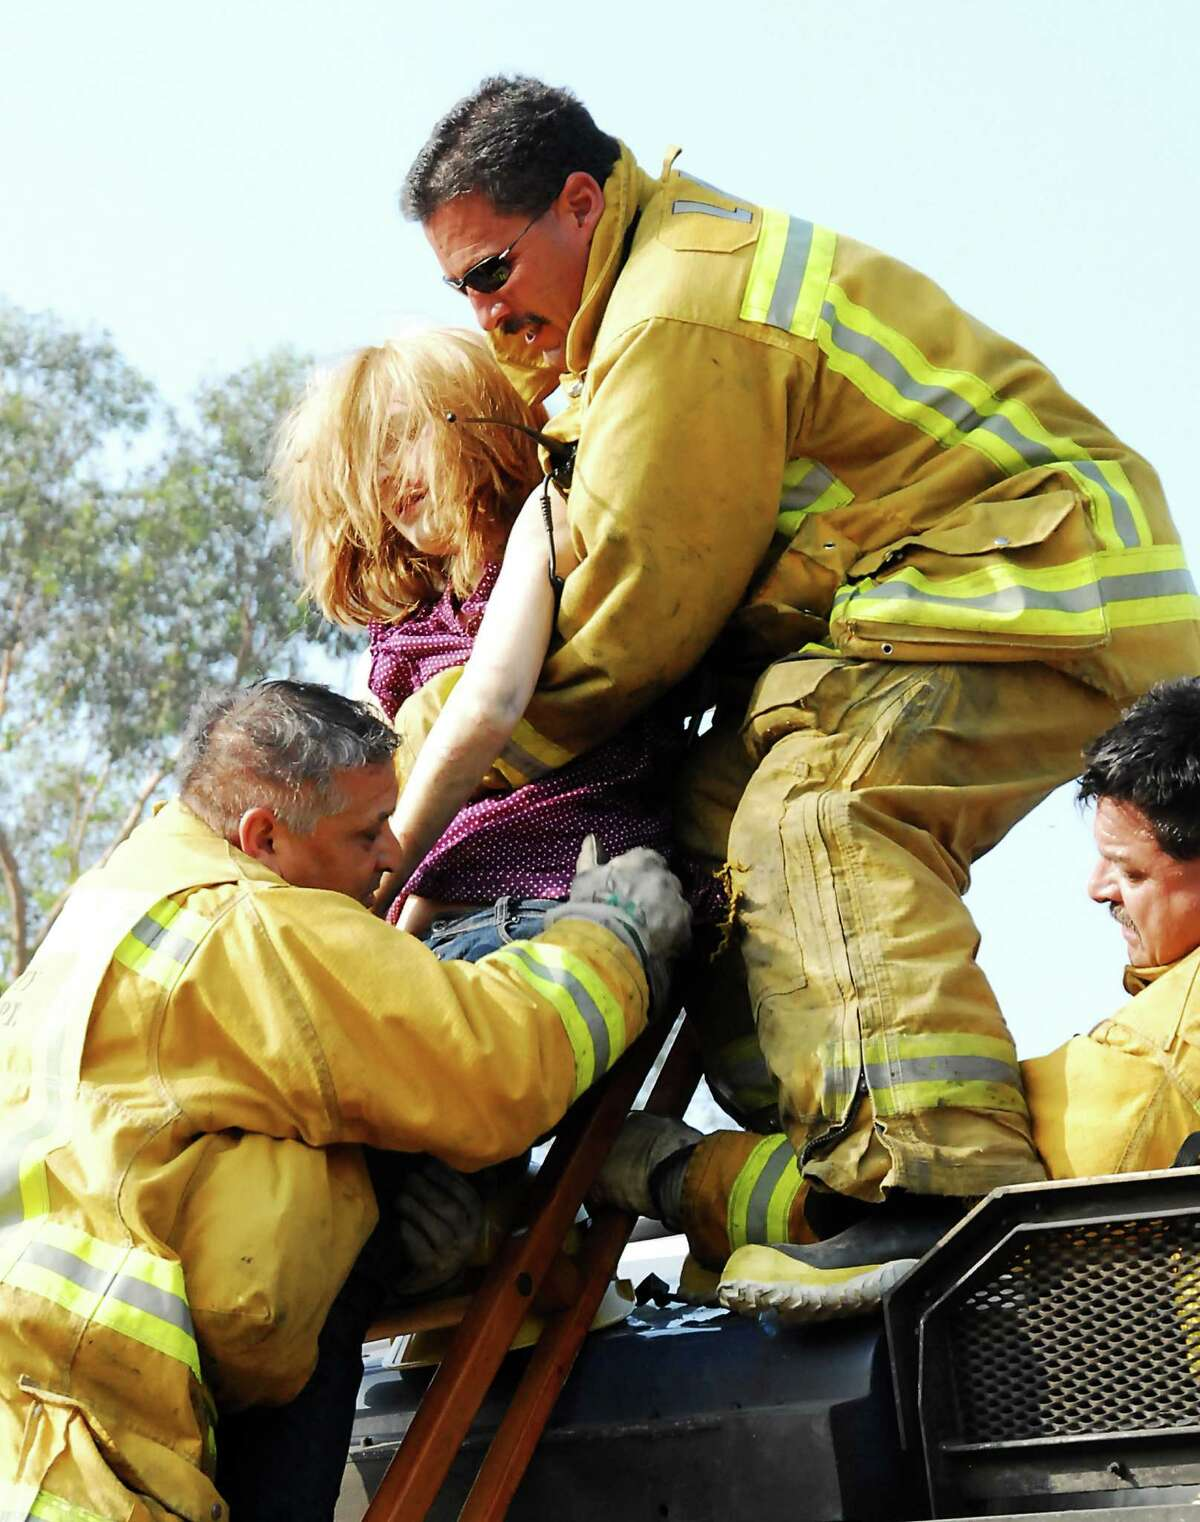 Los Angeles City Fire Department firefighters rescue a victim from the wreckage of a Metrolink commuter train after a train crash in the Chatsworth area of Los Angeles on Friday, Sept. 12, 2008.(AP Photo/Ryan Ling)